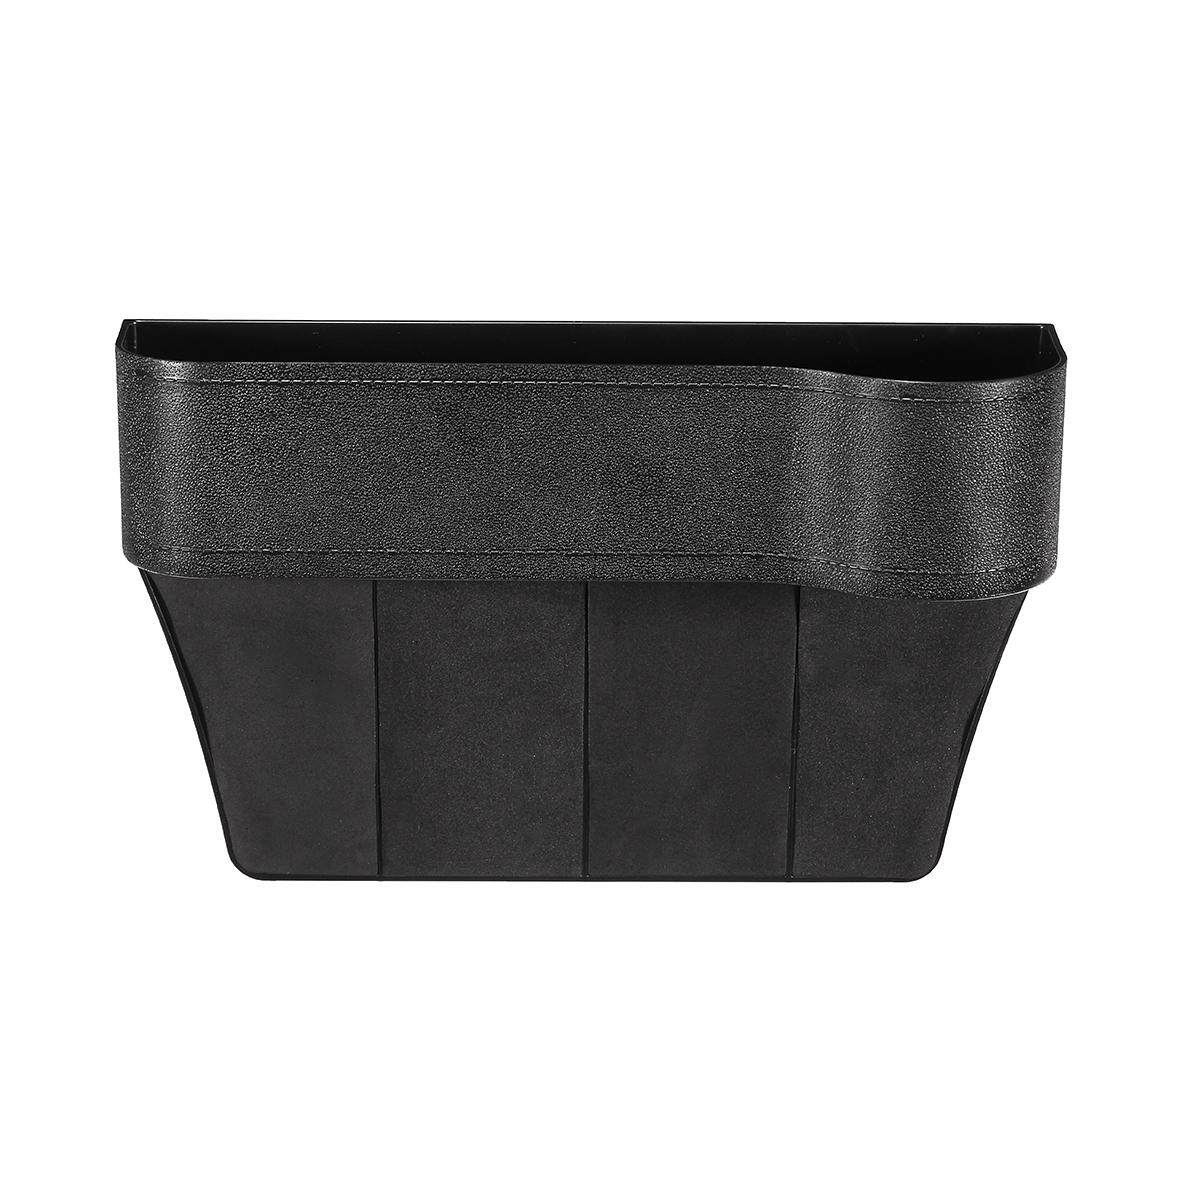 Car Seat Crevice Gap Catcher Storage Box Phone Cup Drink Holder Pocket Organizer .